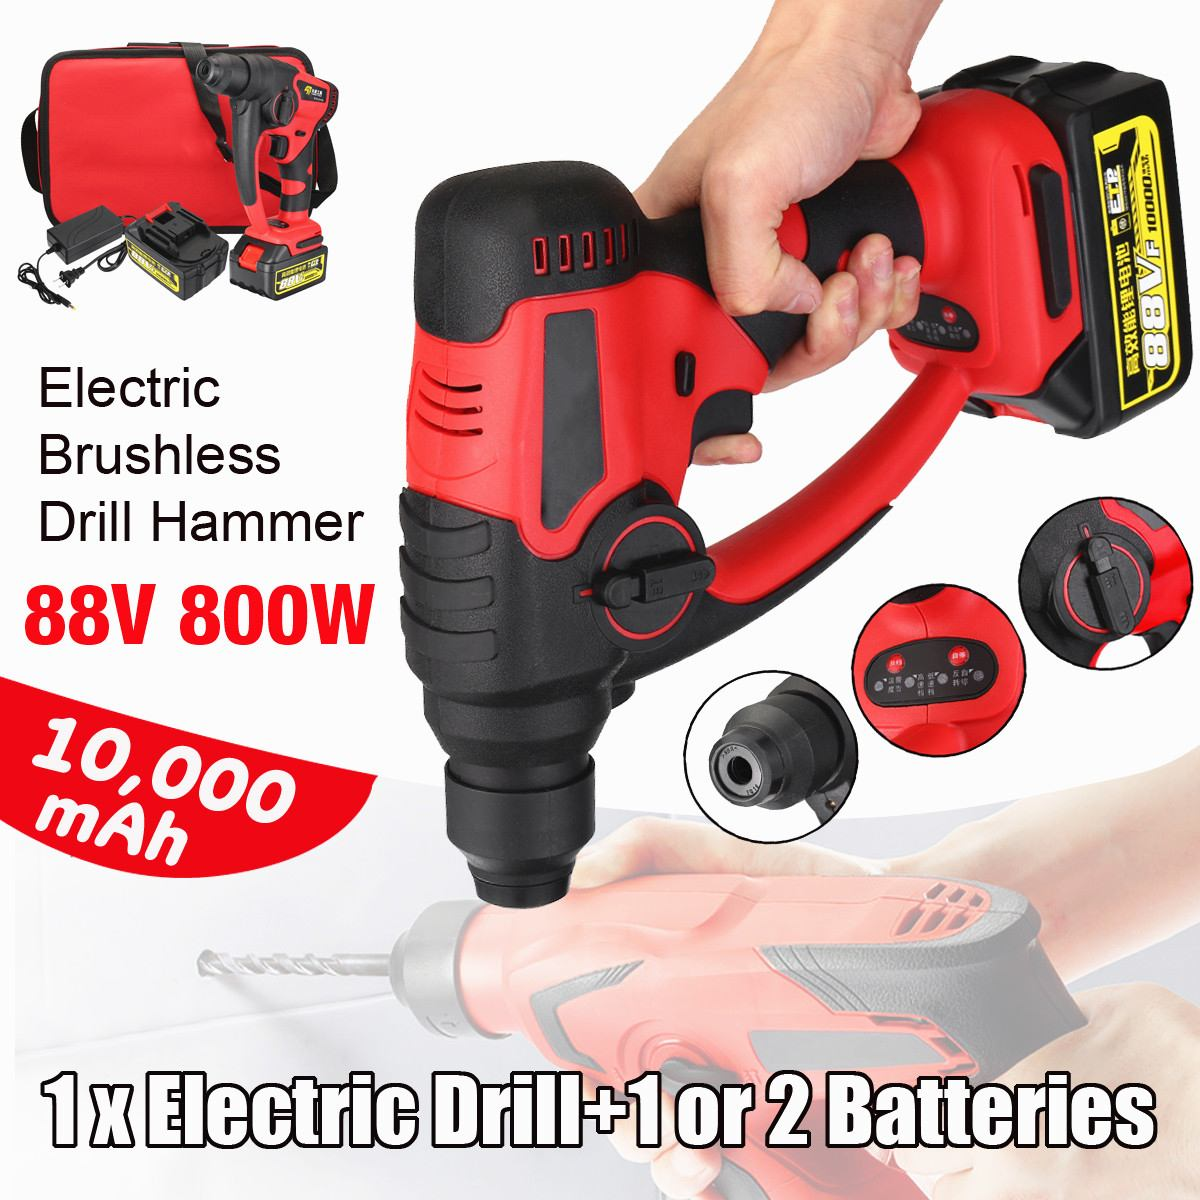 Drillpro 88v 800w 10000mAh Electric Hammer Brushless Cordless Lithium-Ion Hammer Drill With 1 Or 2 Battery Power Tools